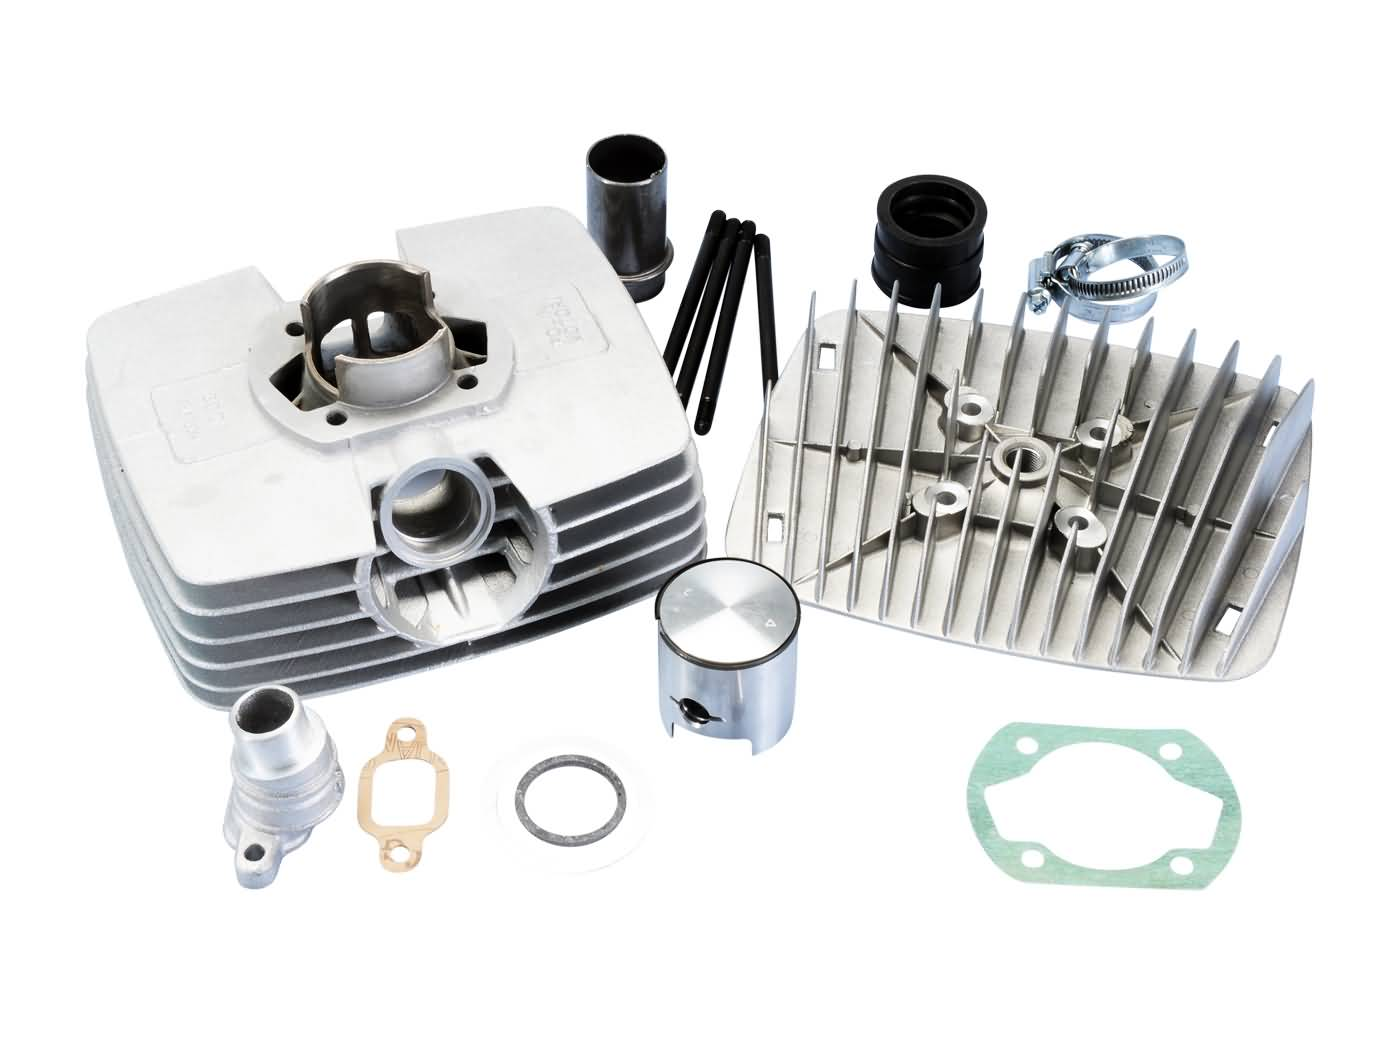 cylinder kit Polini 80cc Series 6000 48mm for Fantic Motor